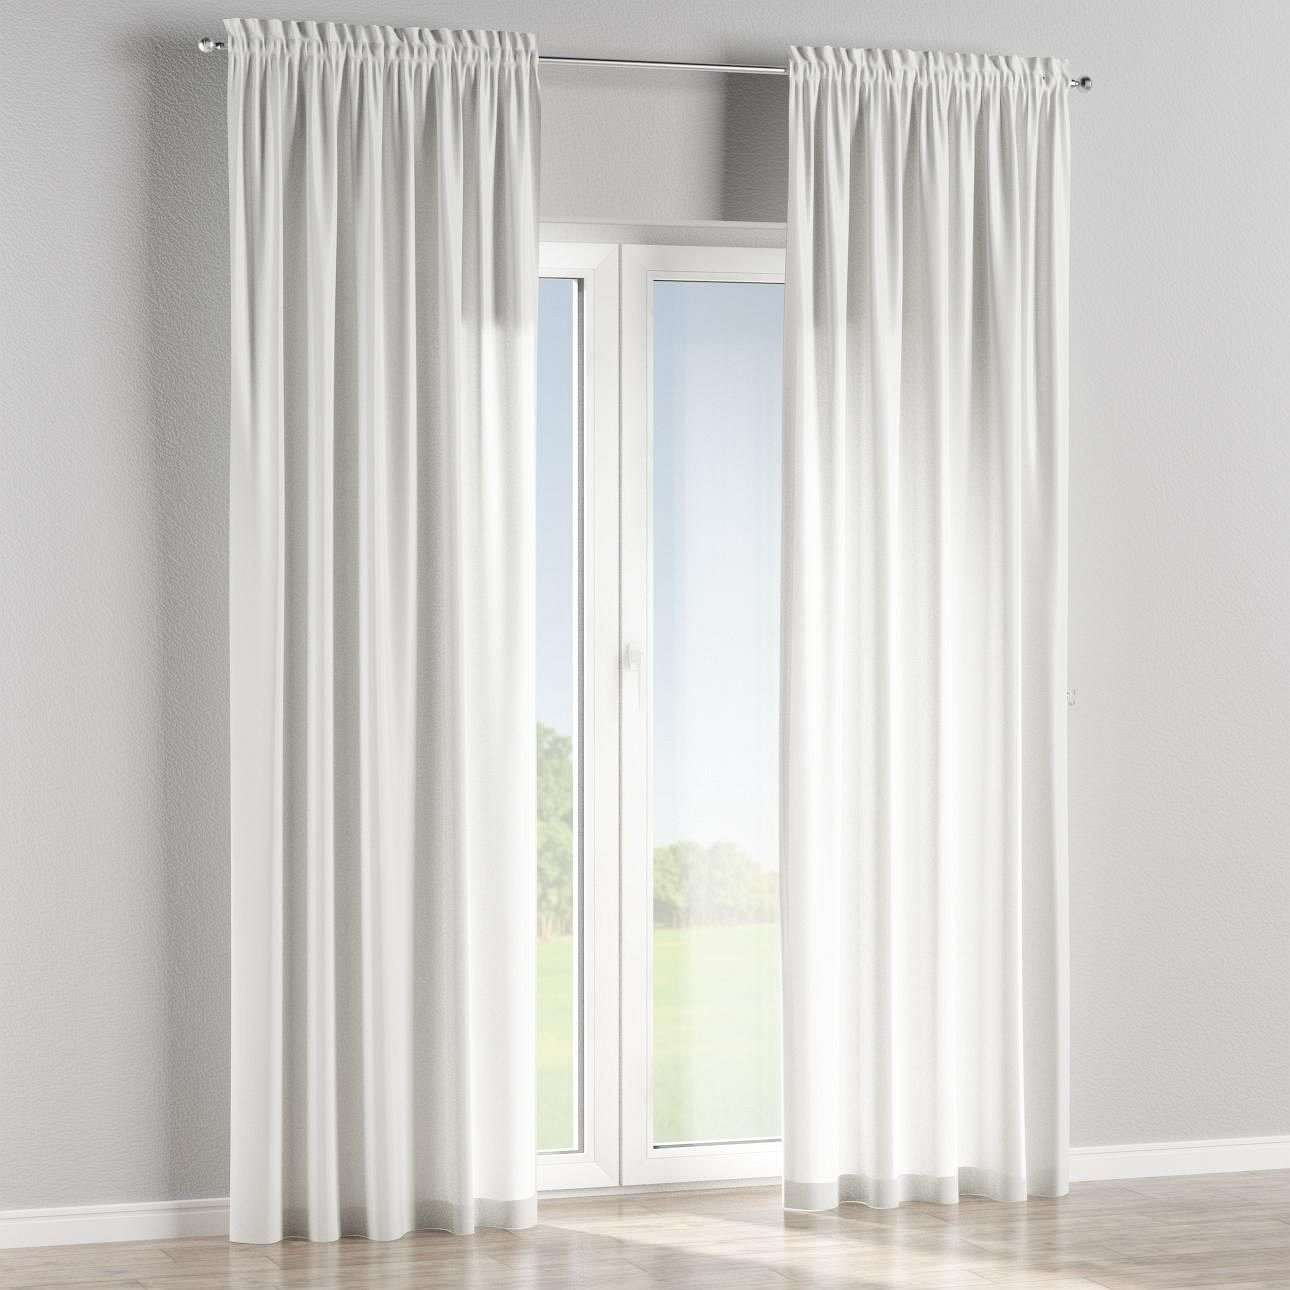 Slot and frill curtains in collection Milano, fabric: 150-35